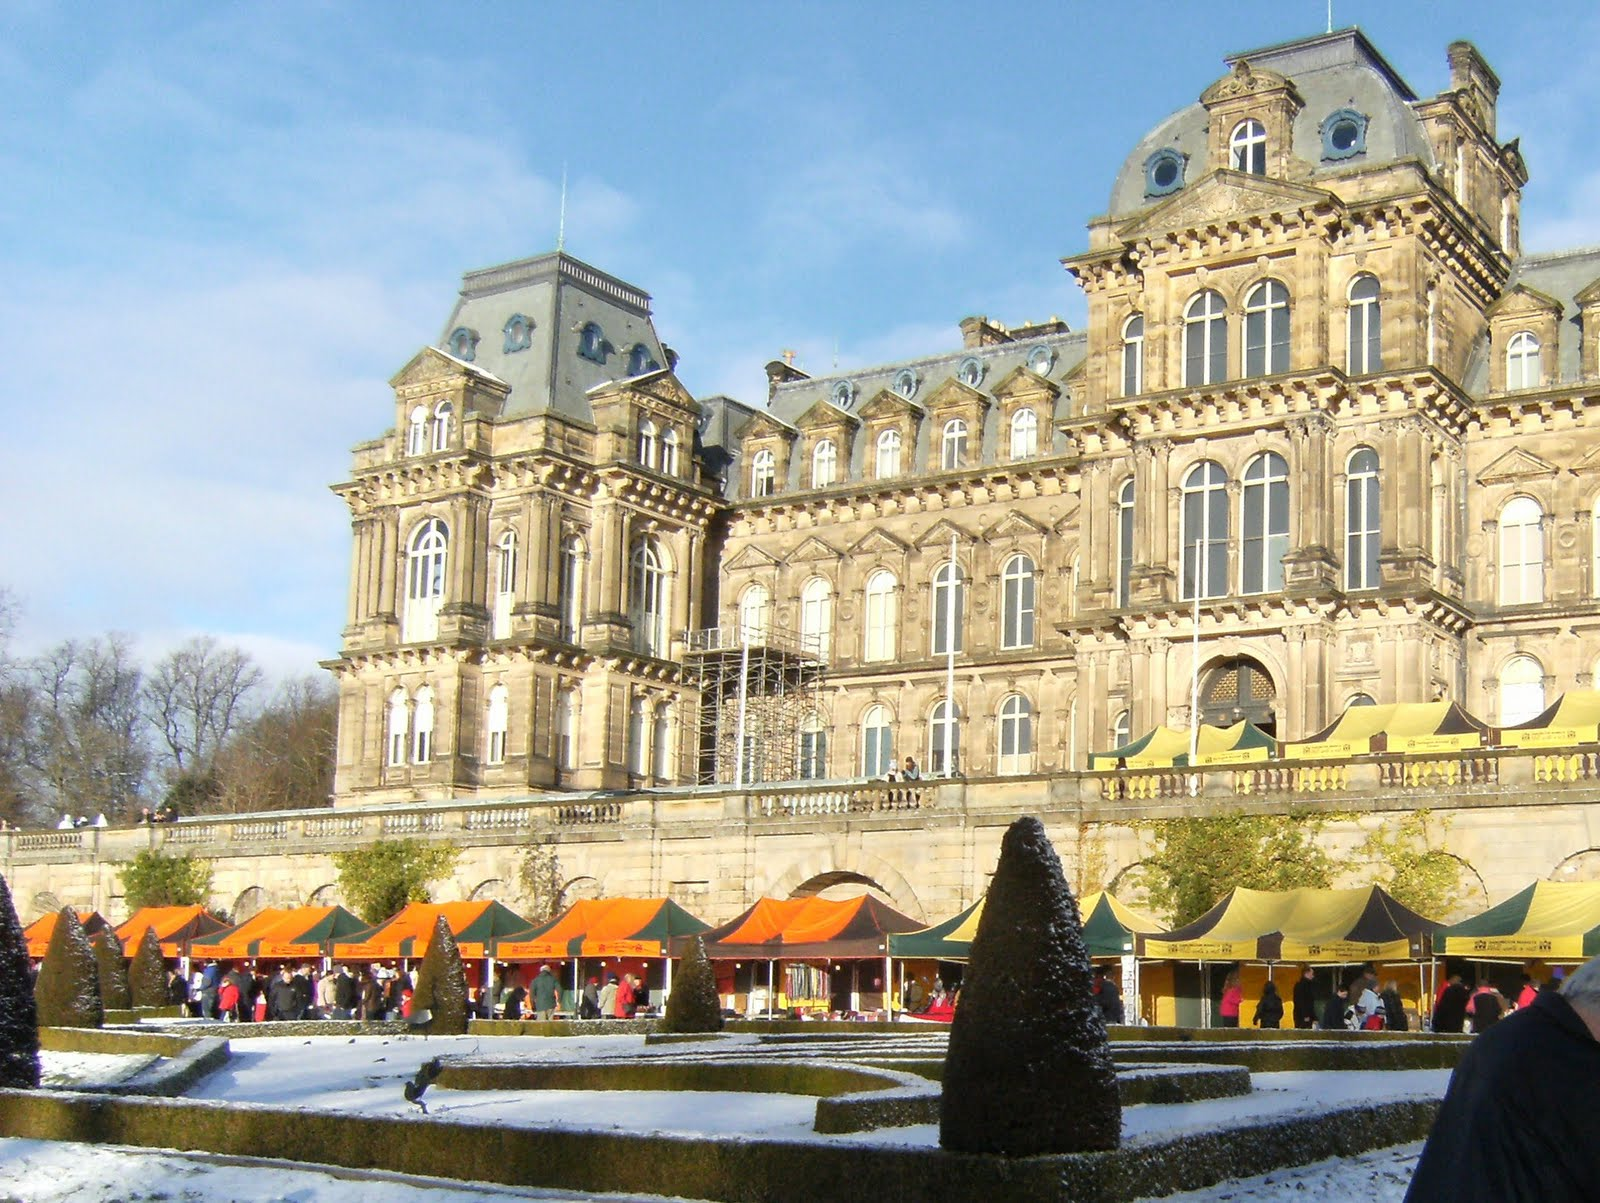 4. The Bowes Museum, County Durham - Free entry with National Art Pass